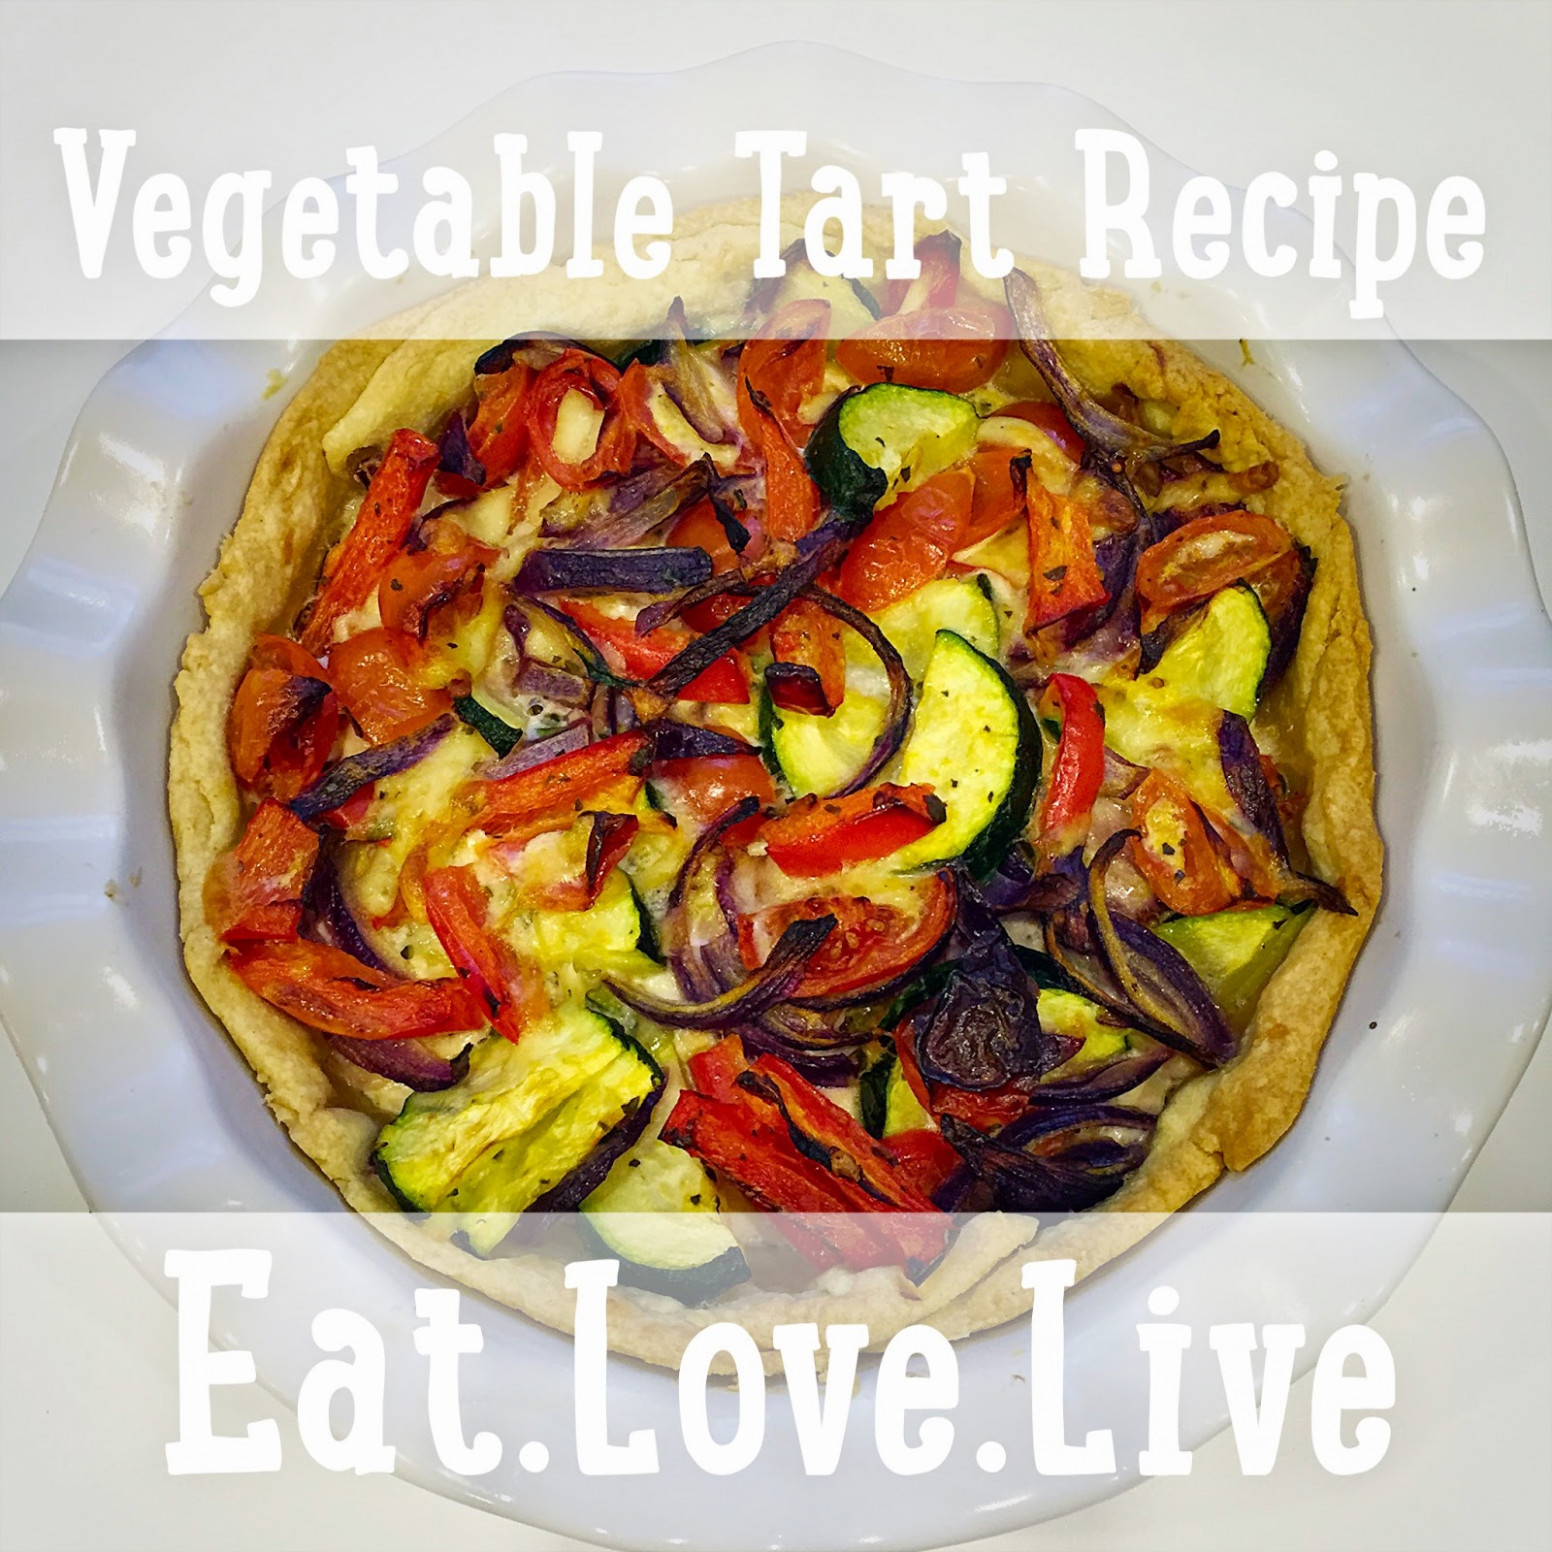 Roasted Mediterranean Vegetable Tart Recipe - Eat.Love